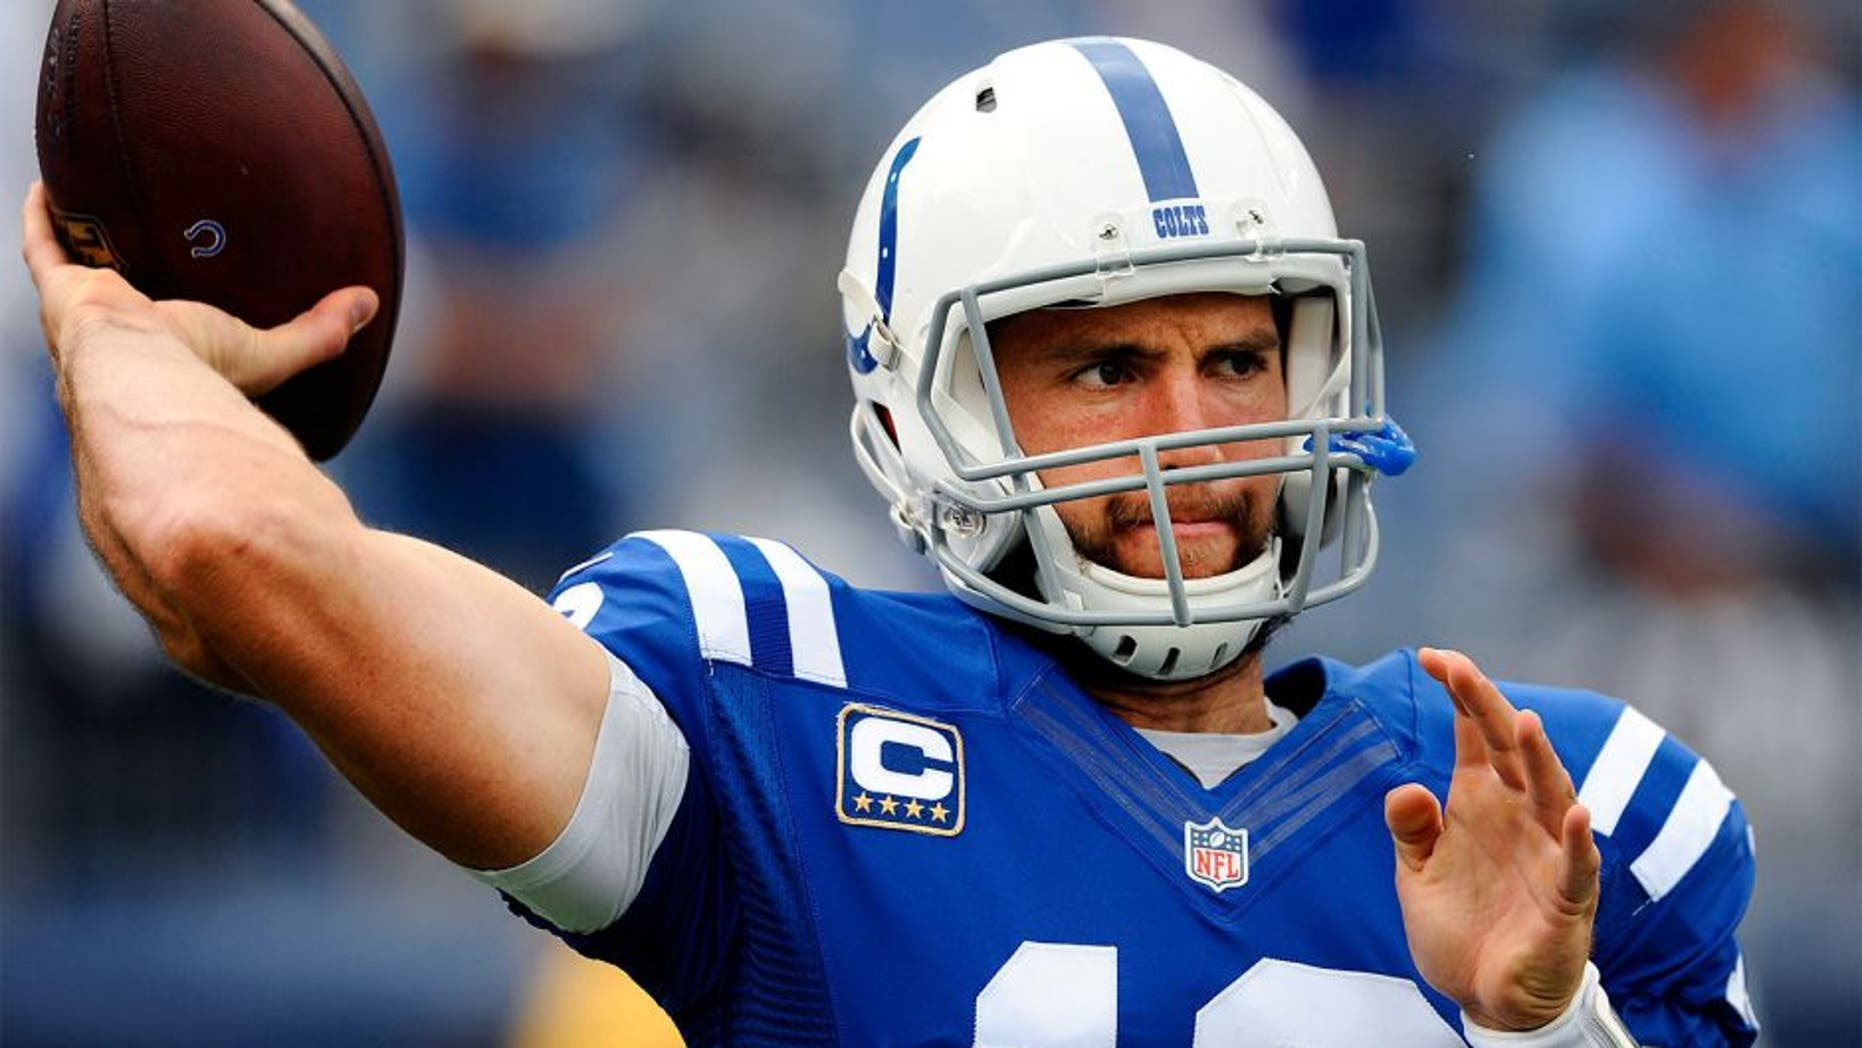 Sep 27, 2015; Nashville, TN, USA; Indianapolis Colts quarterback Andrew Luck (12) warms up prior to the game against the Tennessee Titans at Nissan Stadium. Mandatory Credit: Christopher Hanewinckel-USA TODAY Sports